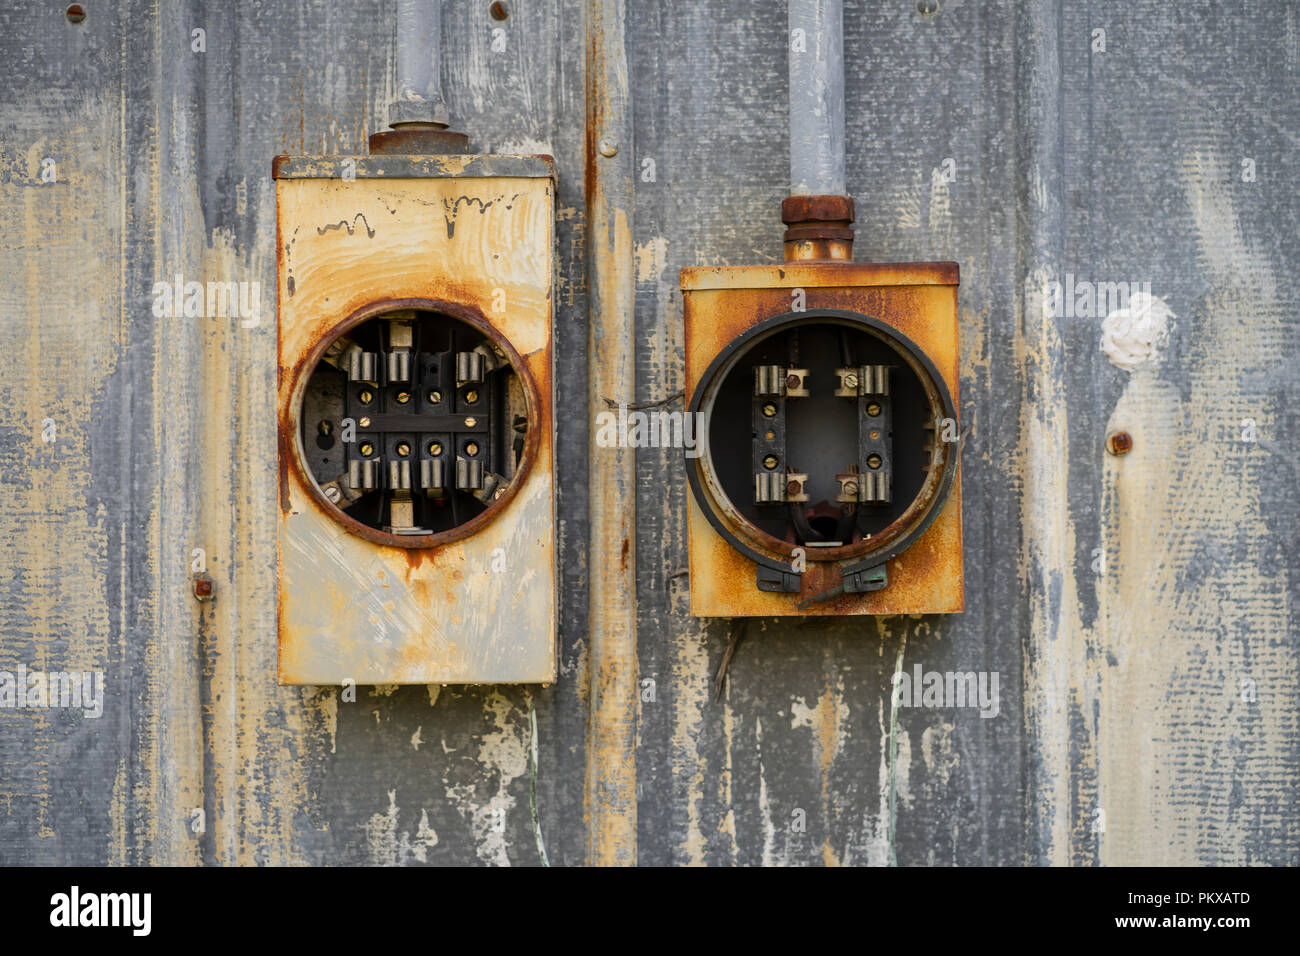 old electrical switches fuse boxes stock photos old electrical rh alamy com